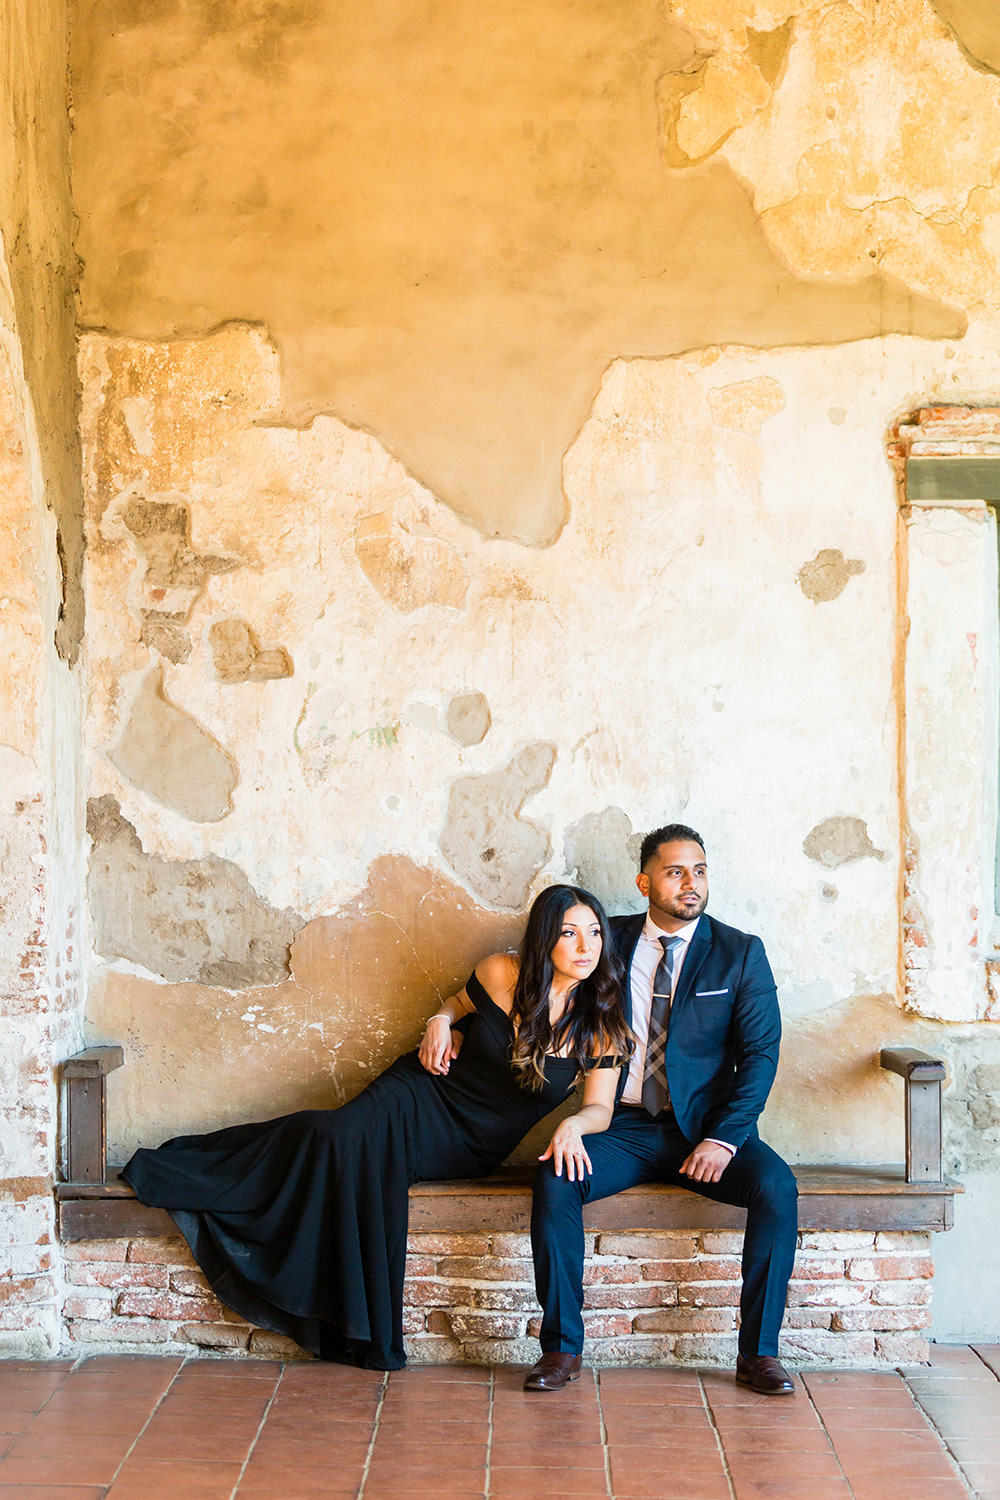 bycphotography mission san jian capistrano engagement session jr